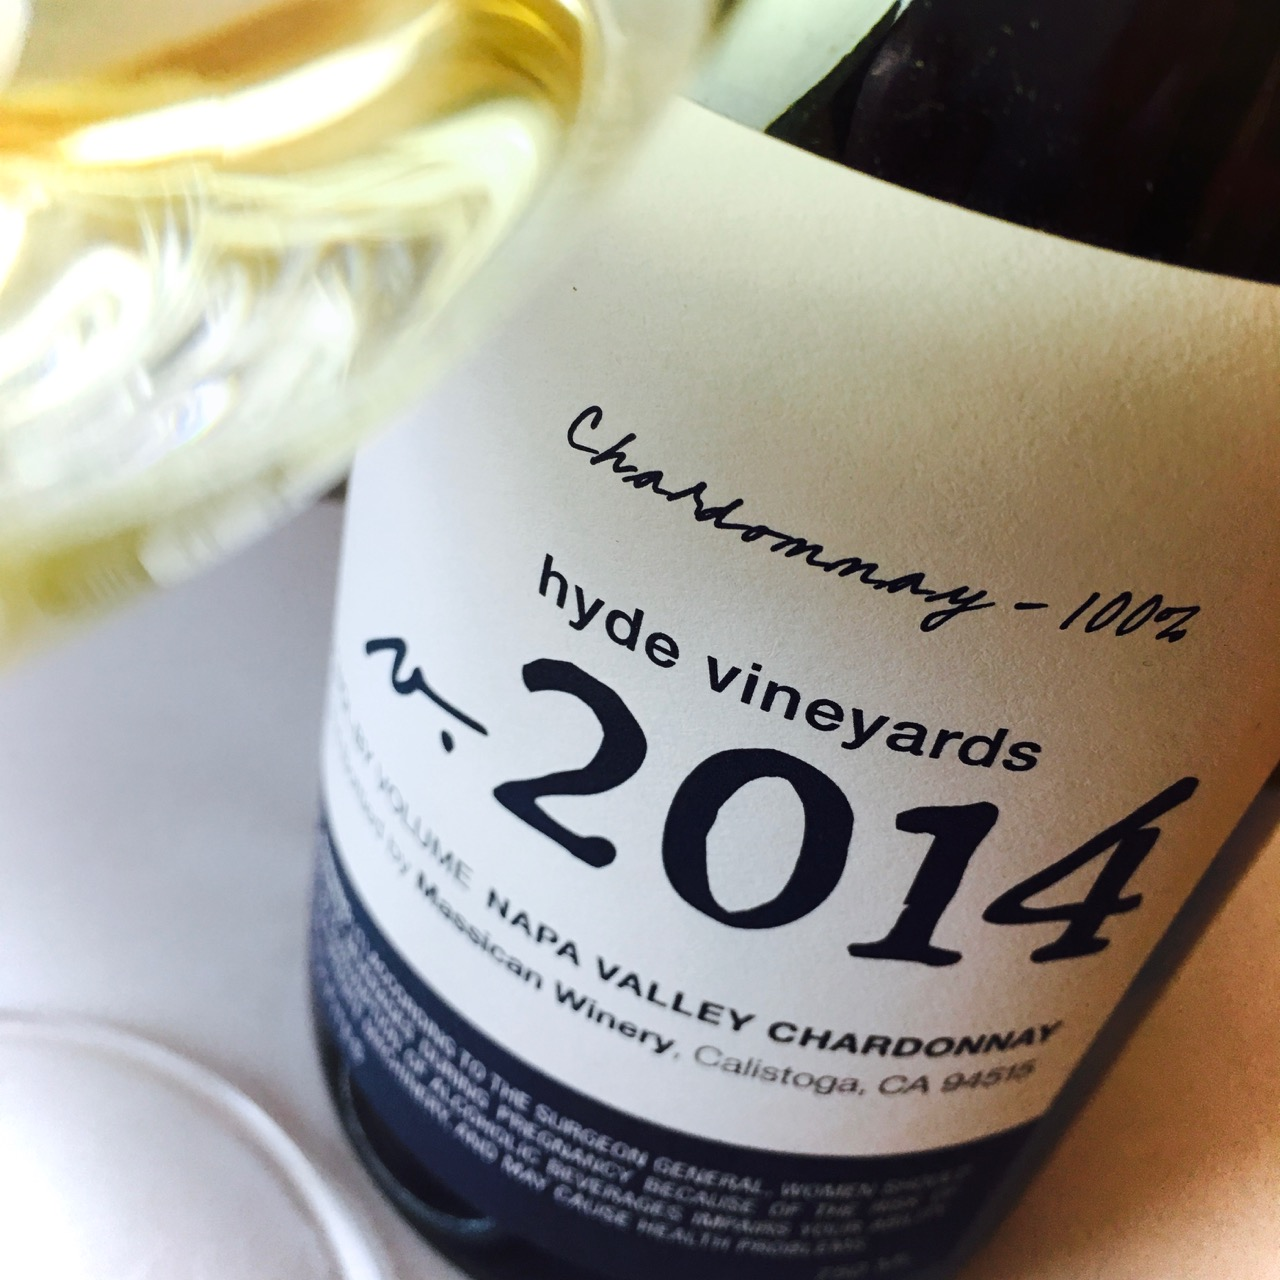 2014 Massican Winery Chardonnay Hyde Vineyards Napa Valley